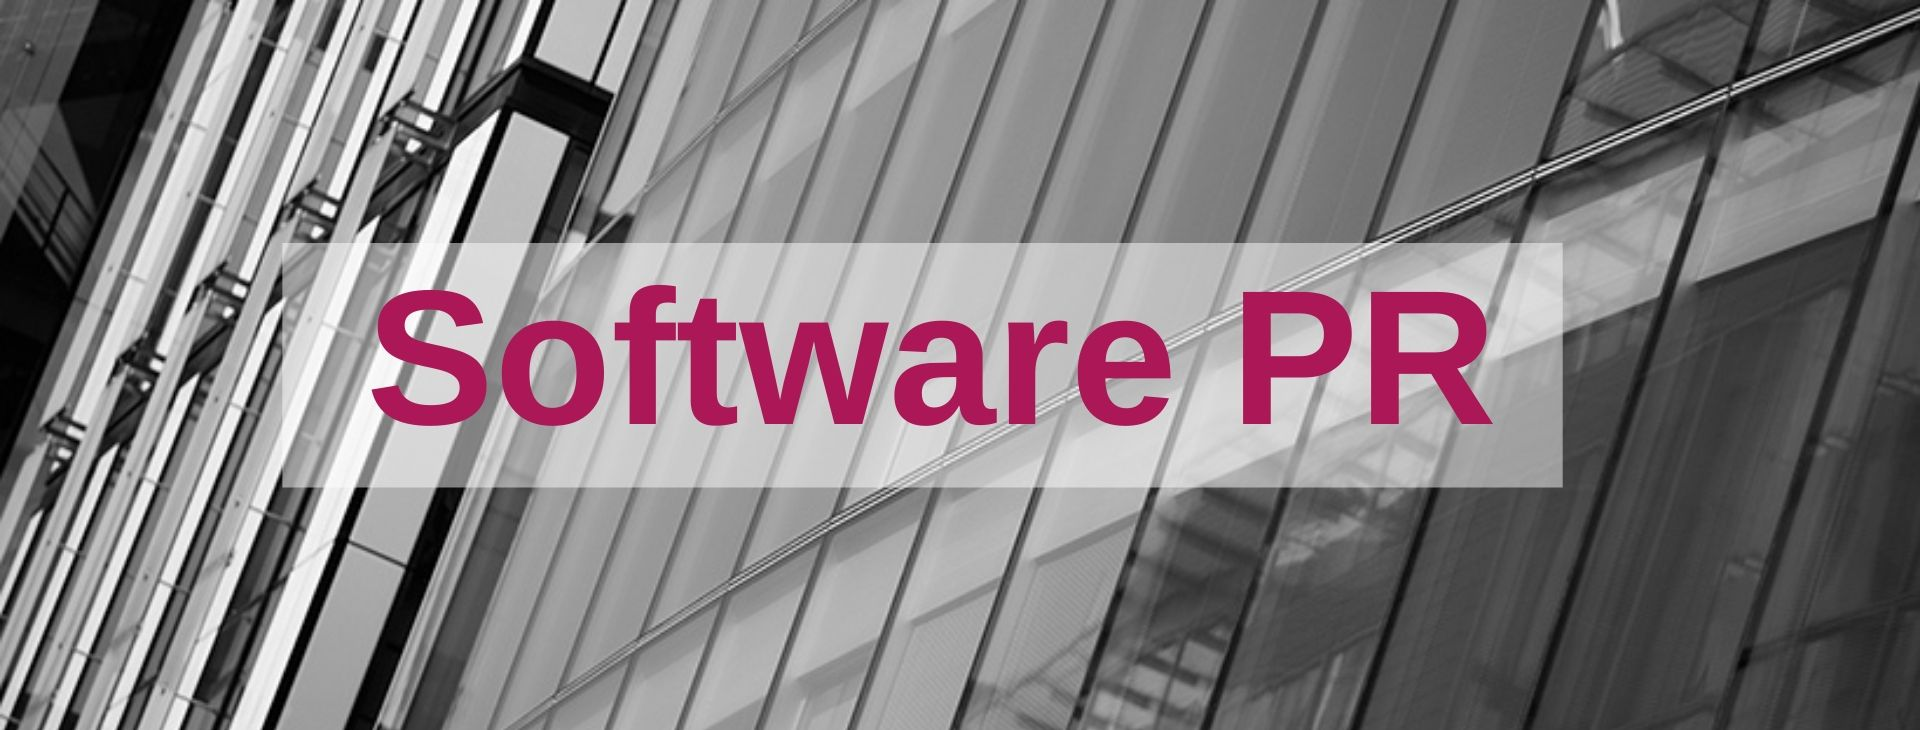 Software PR services